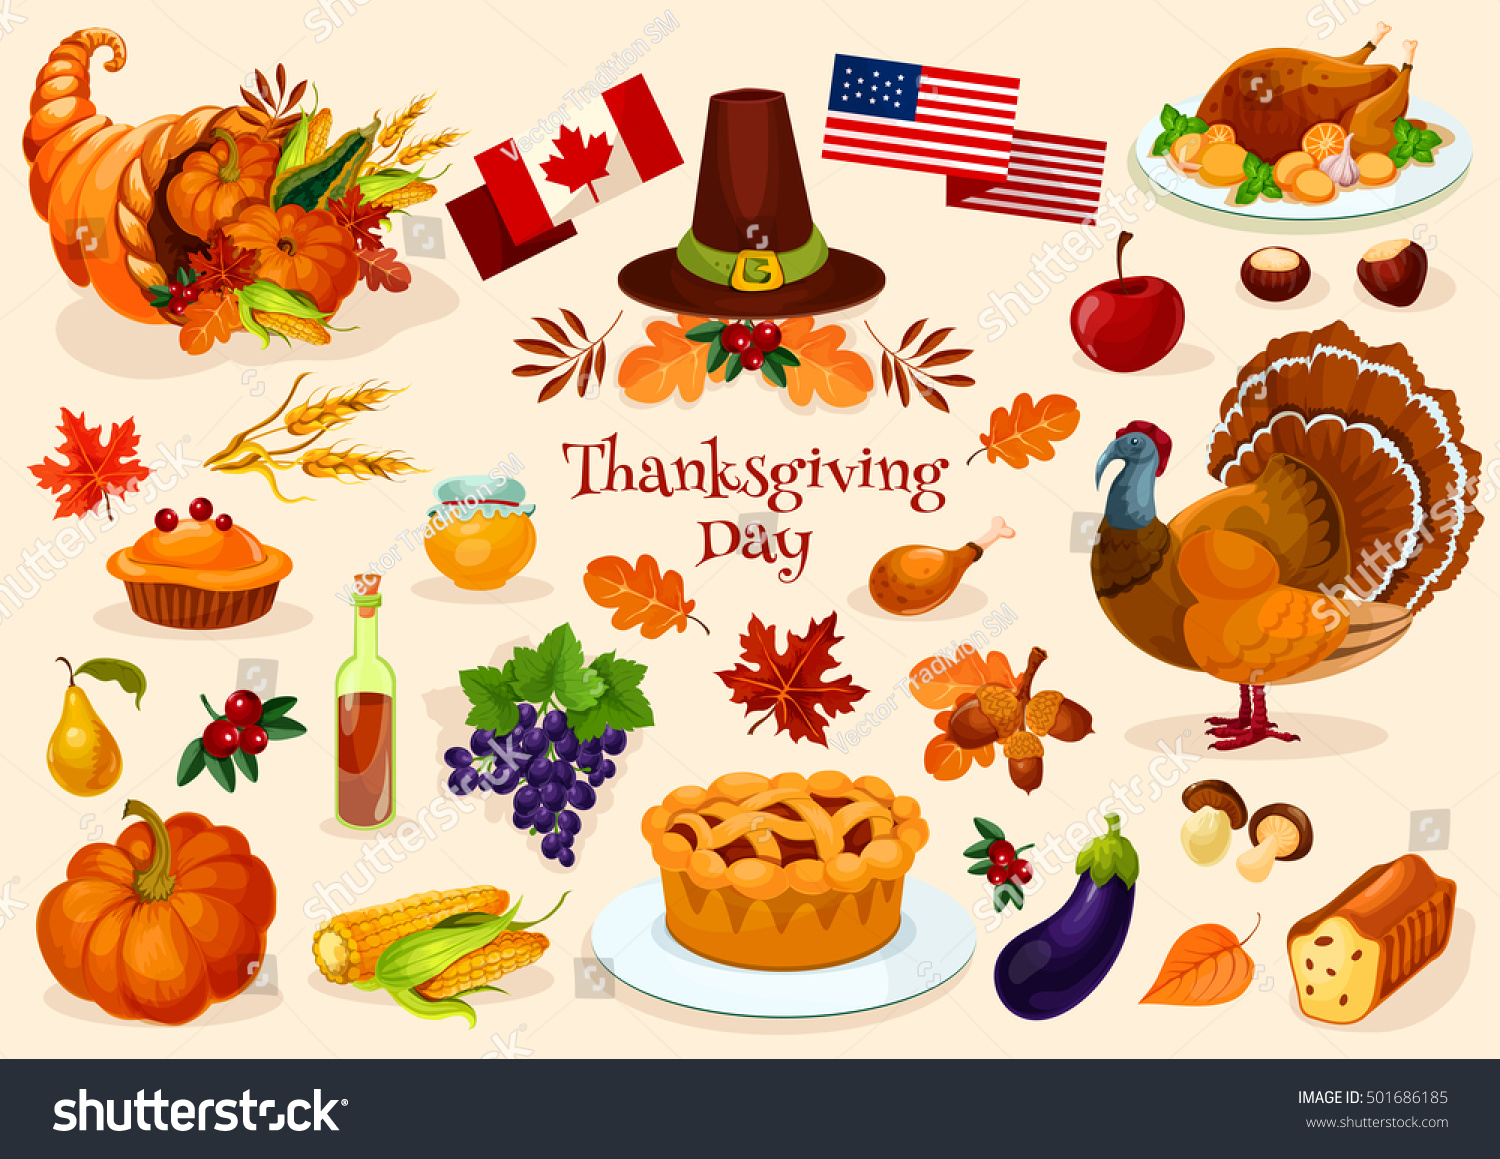 online image   photo editor shutterstock editor thanksgiving feast clipart free thanksgiving feast clipart free